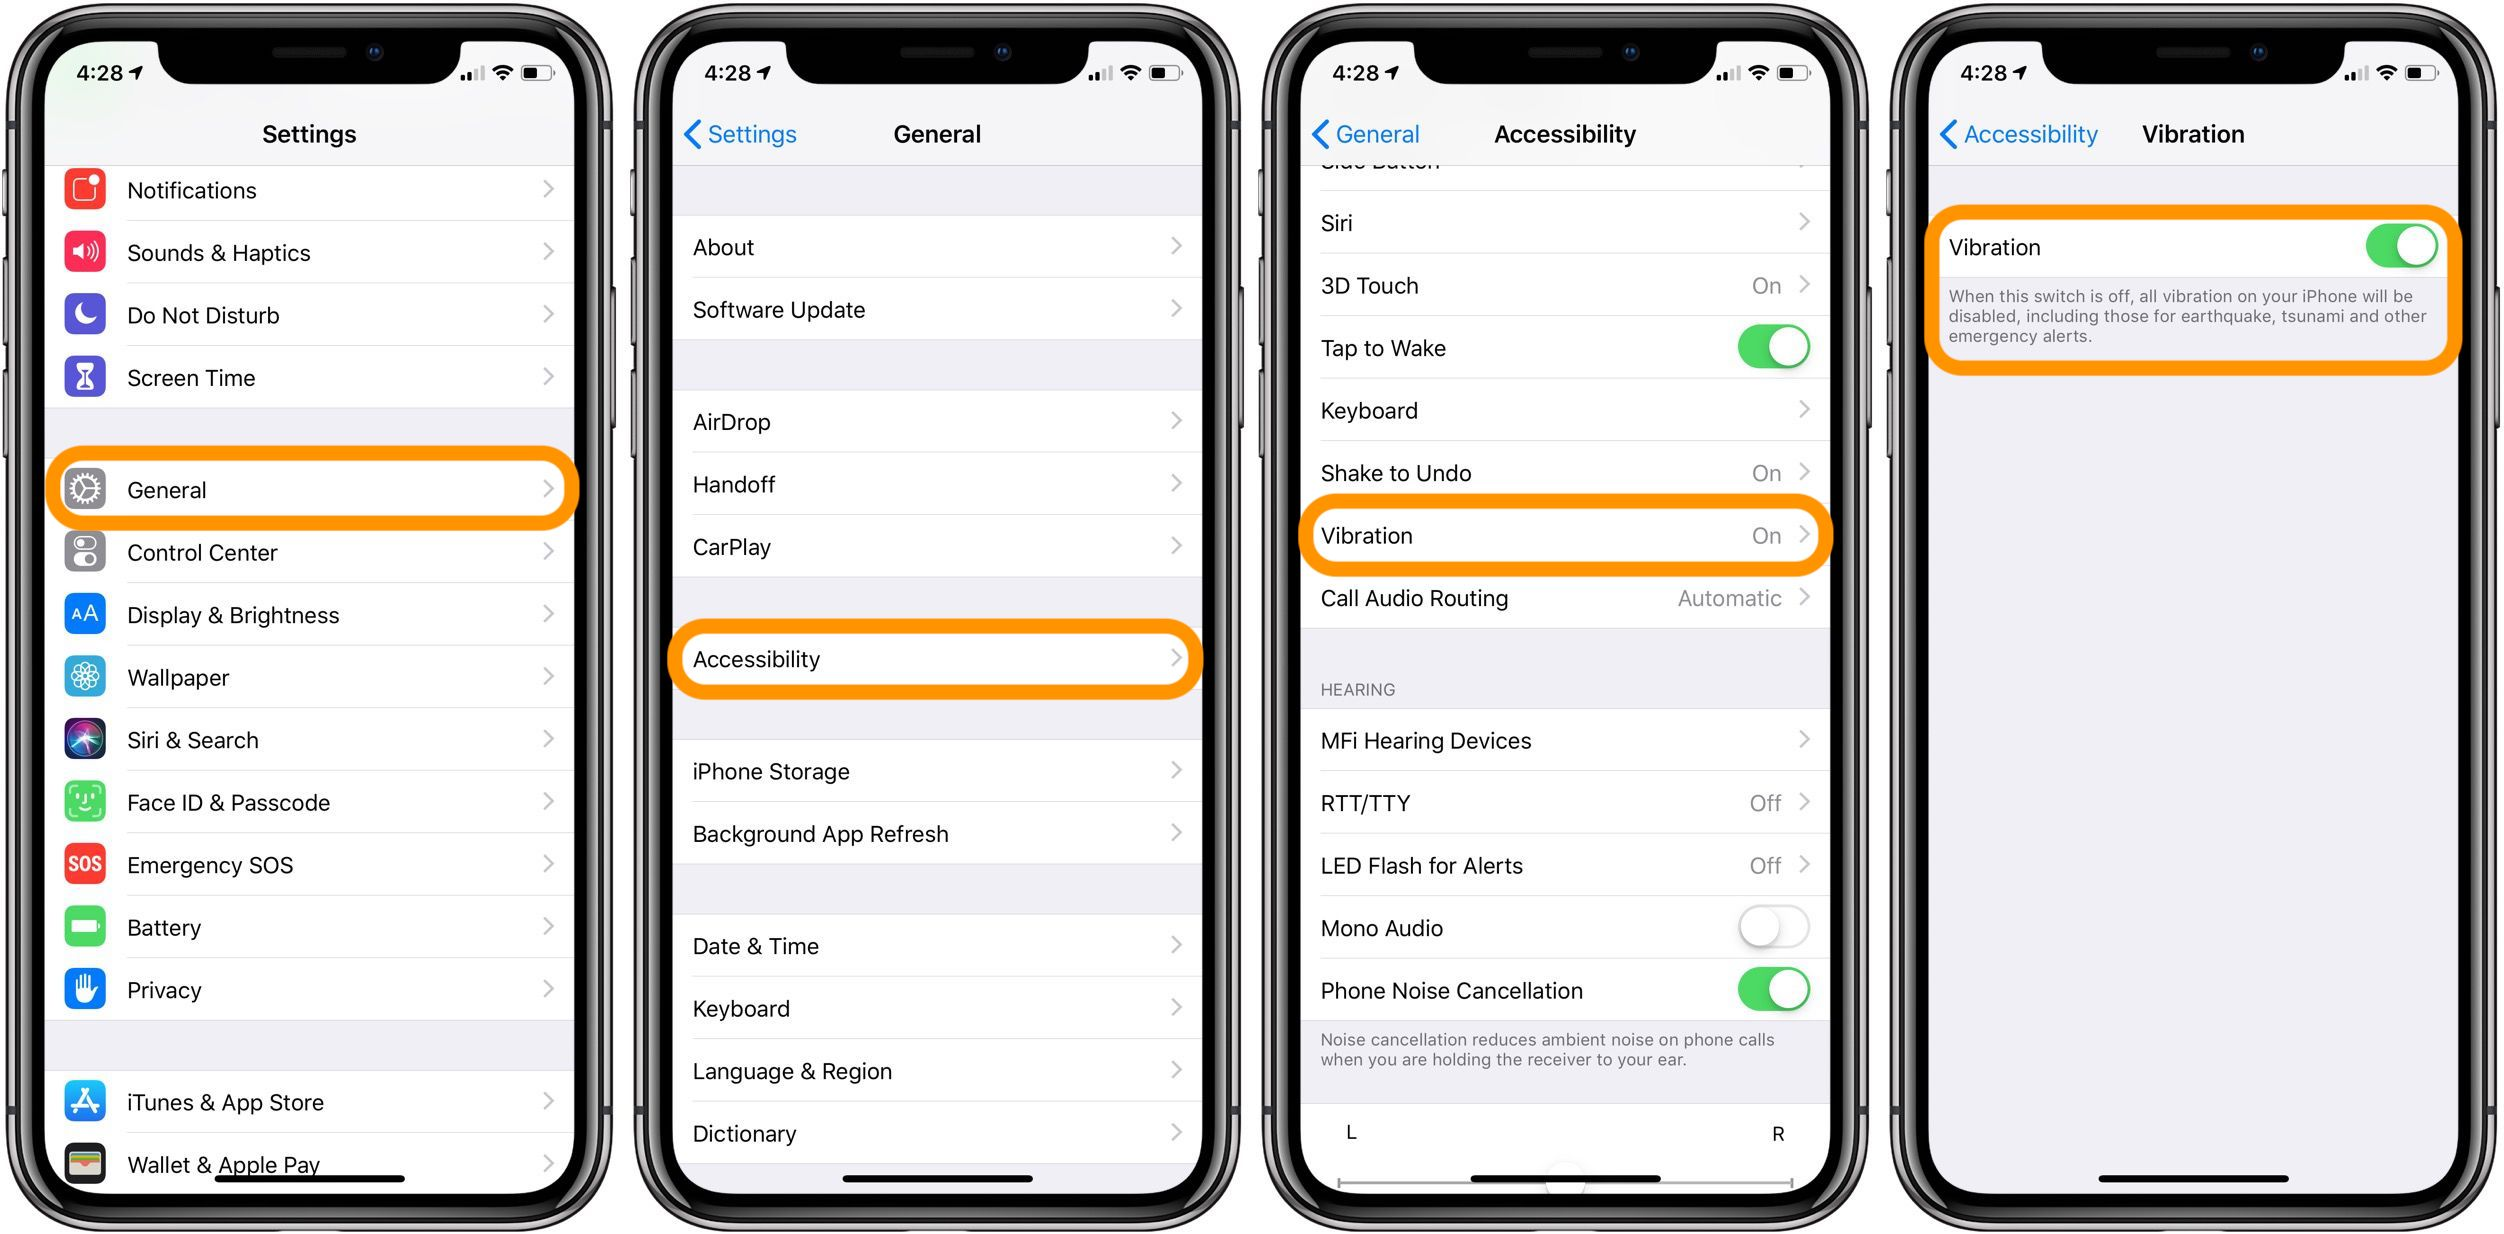 iPhone: How to customize system vibrations and haptic